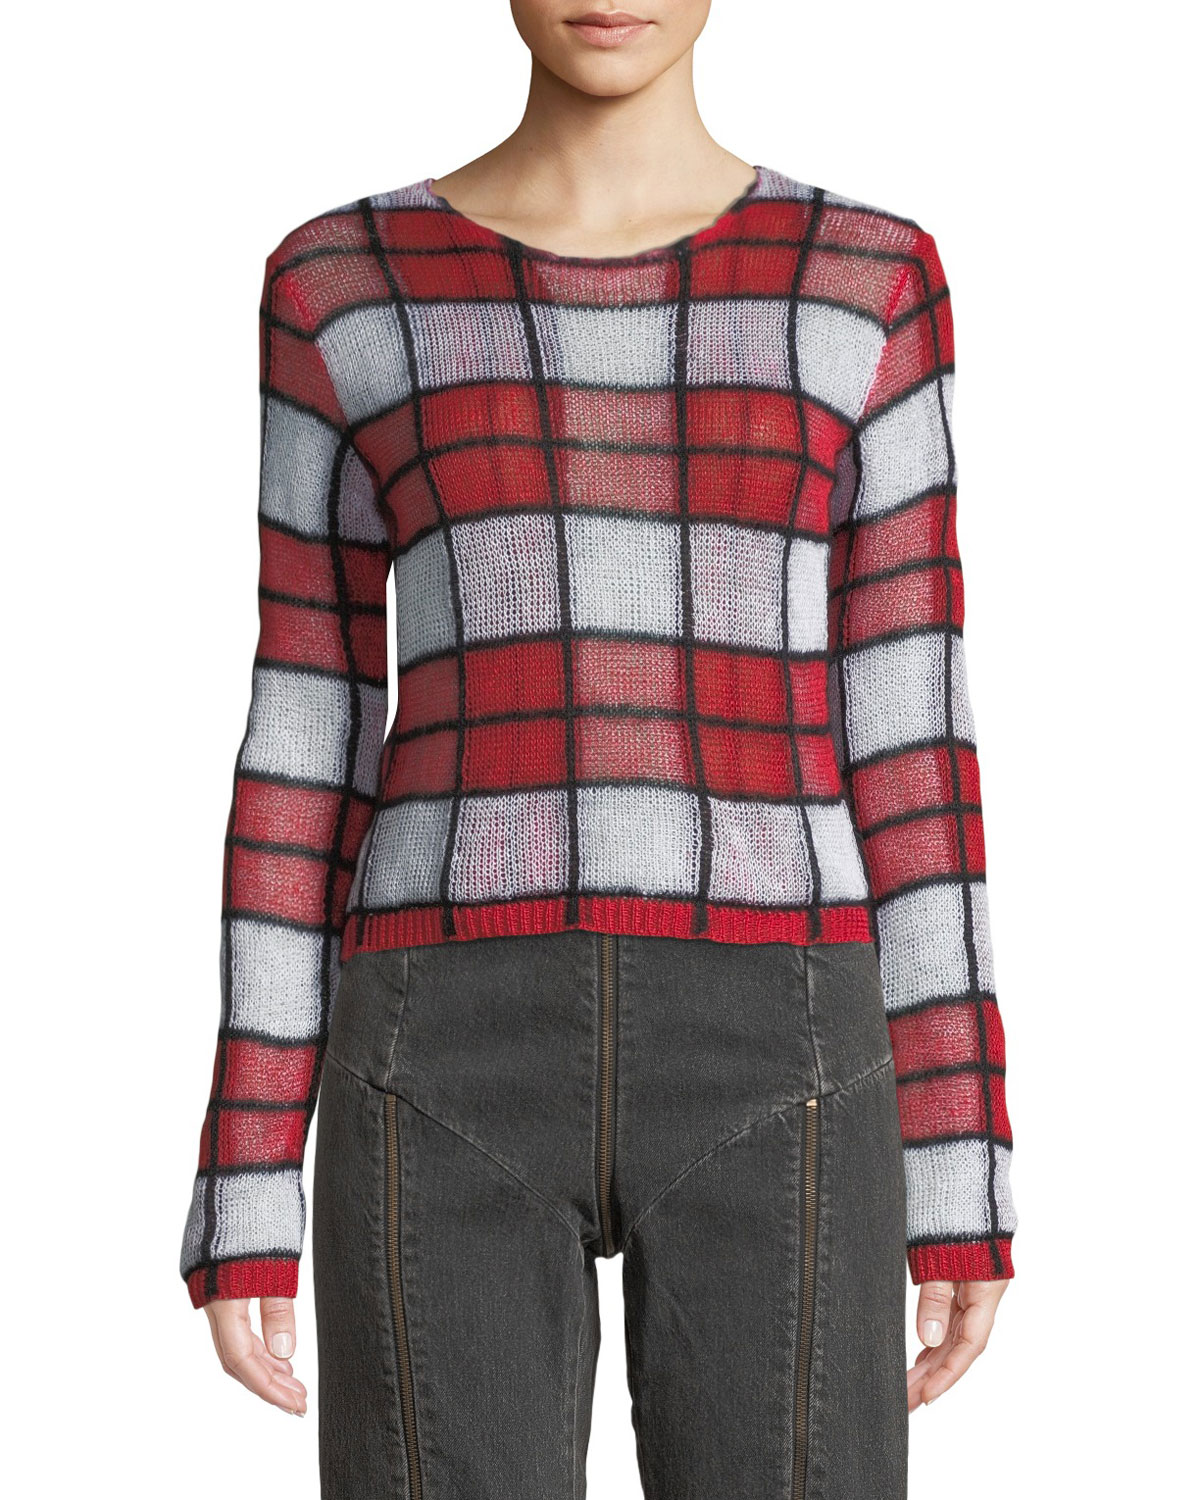 2812e7b76e67 McQ Alexander McQueen Sheer Checker Sweater